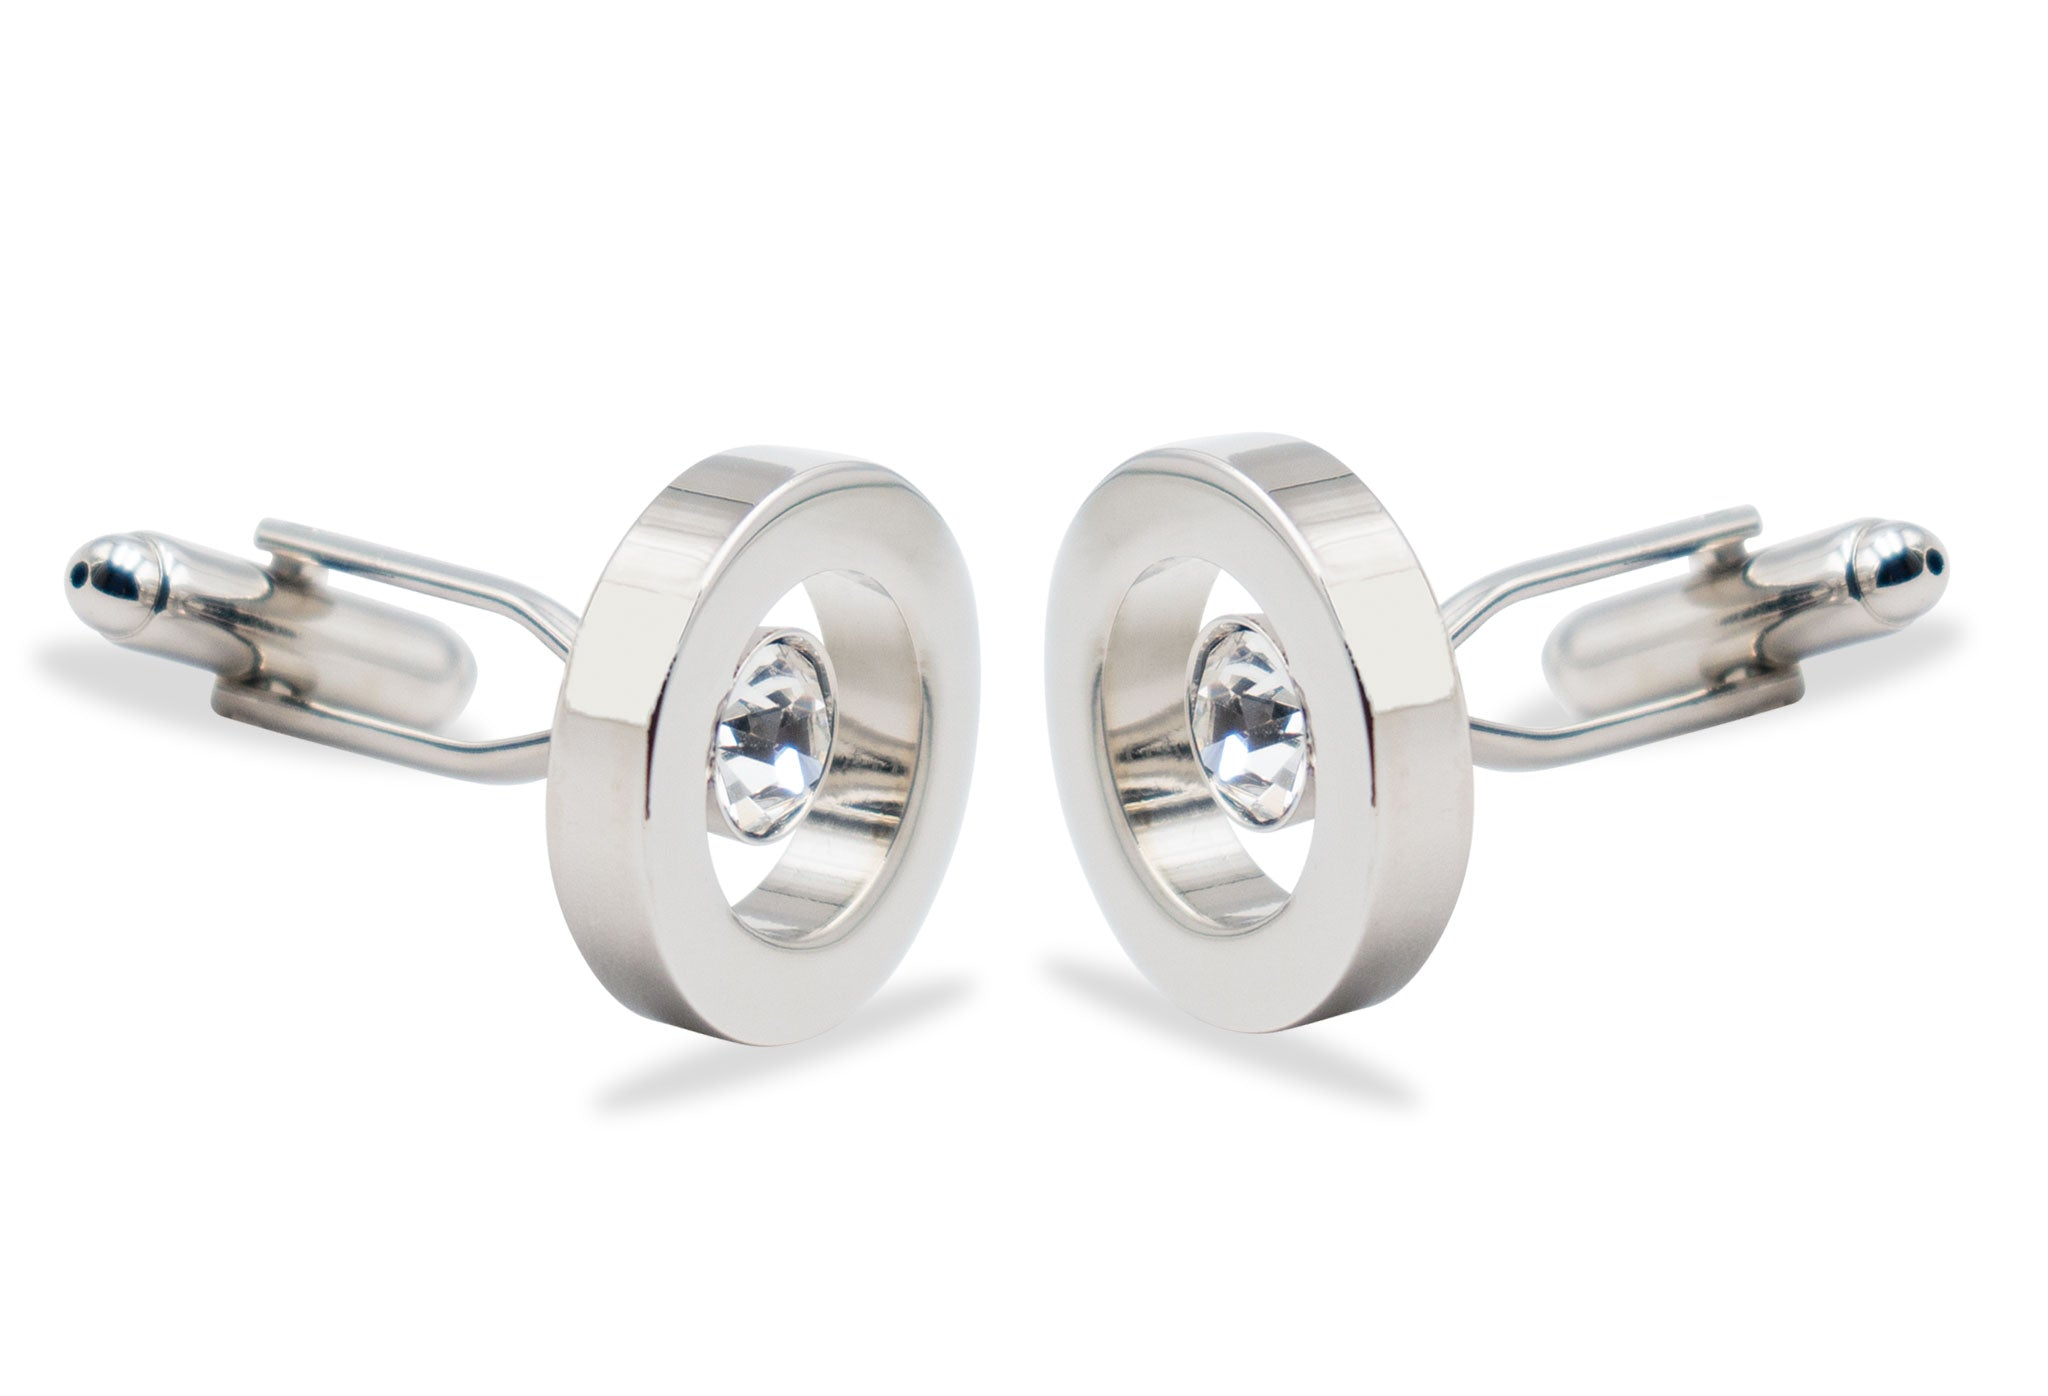 Caracas Floating Diamonte Chrome Cufflink